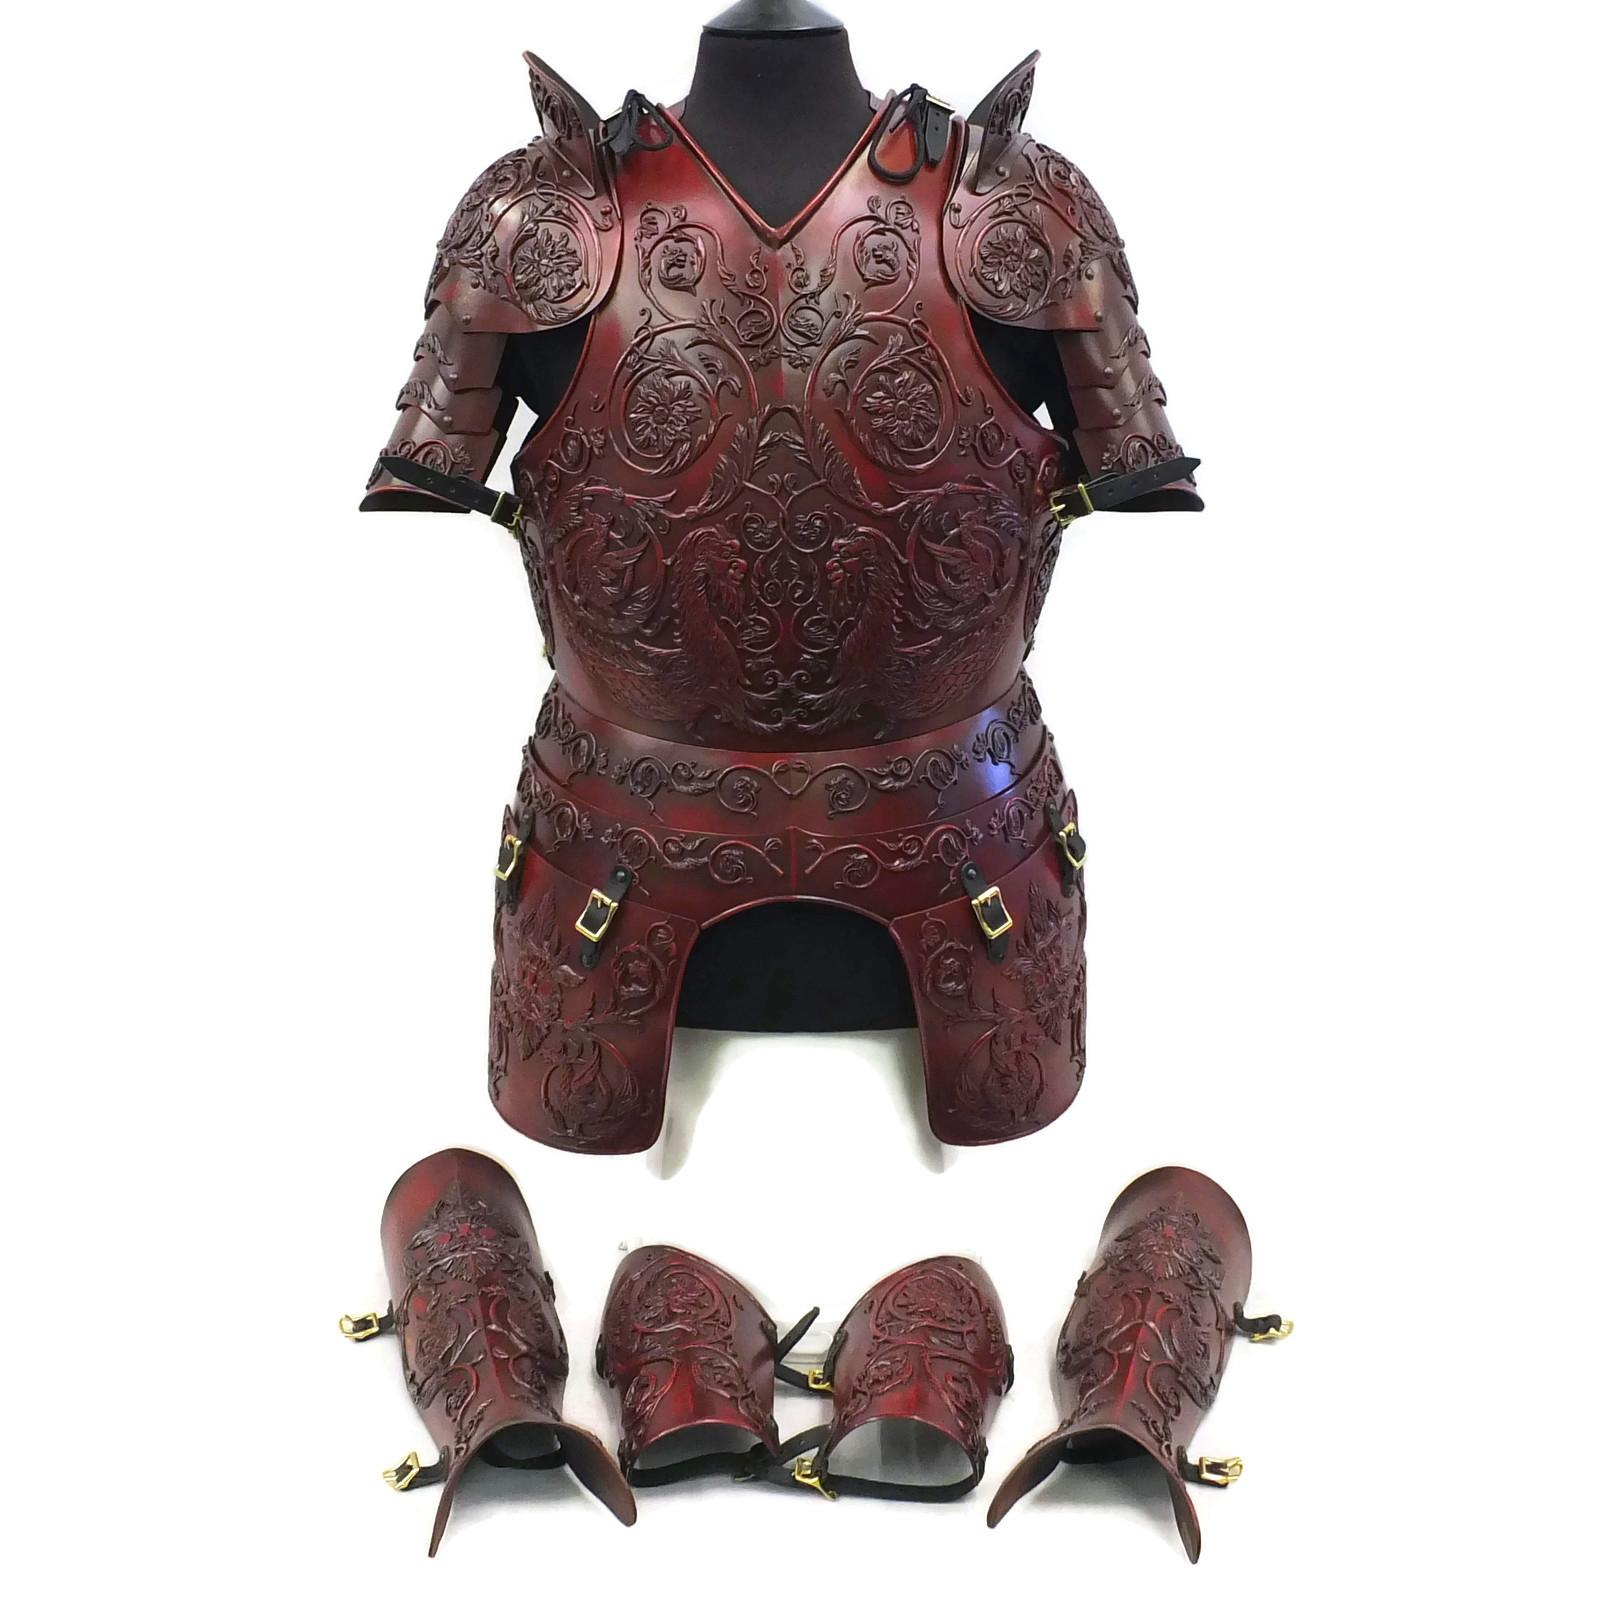 Negroli embossed larp armour set red finish